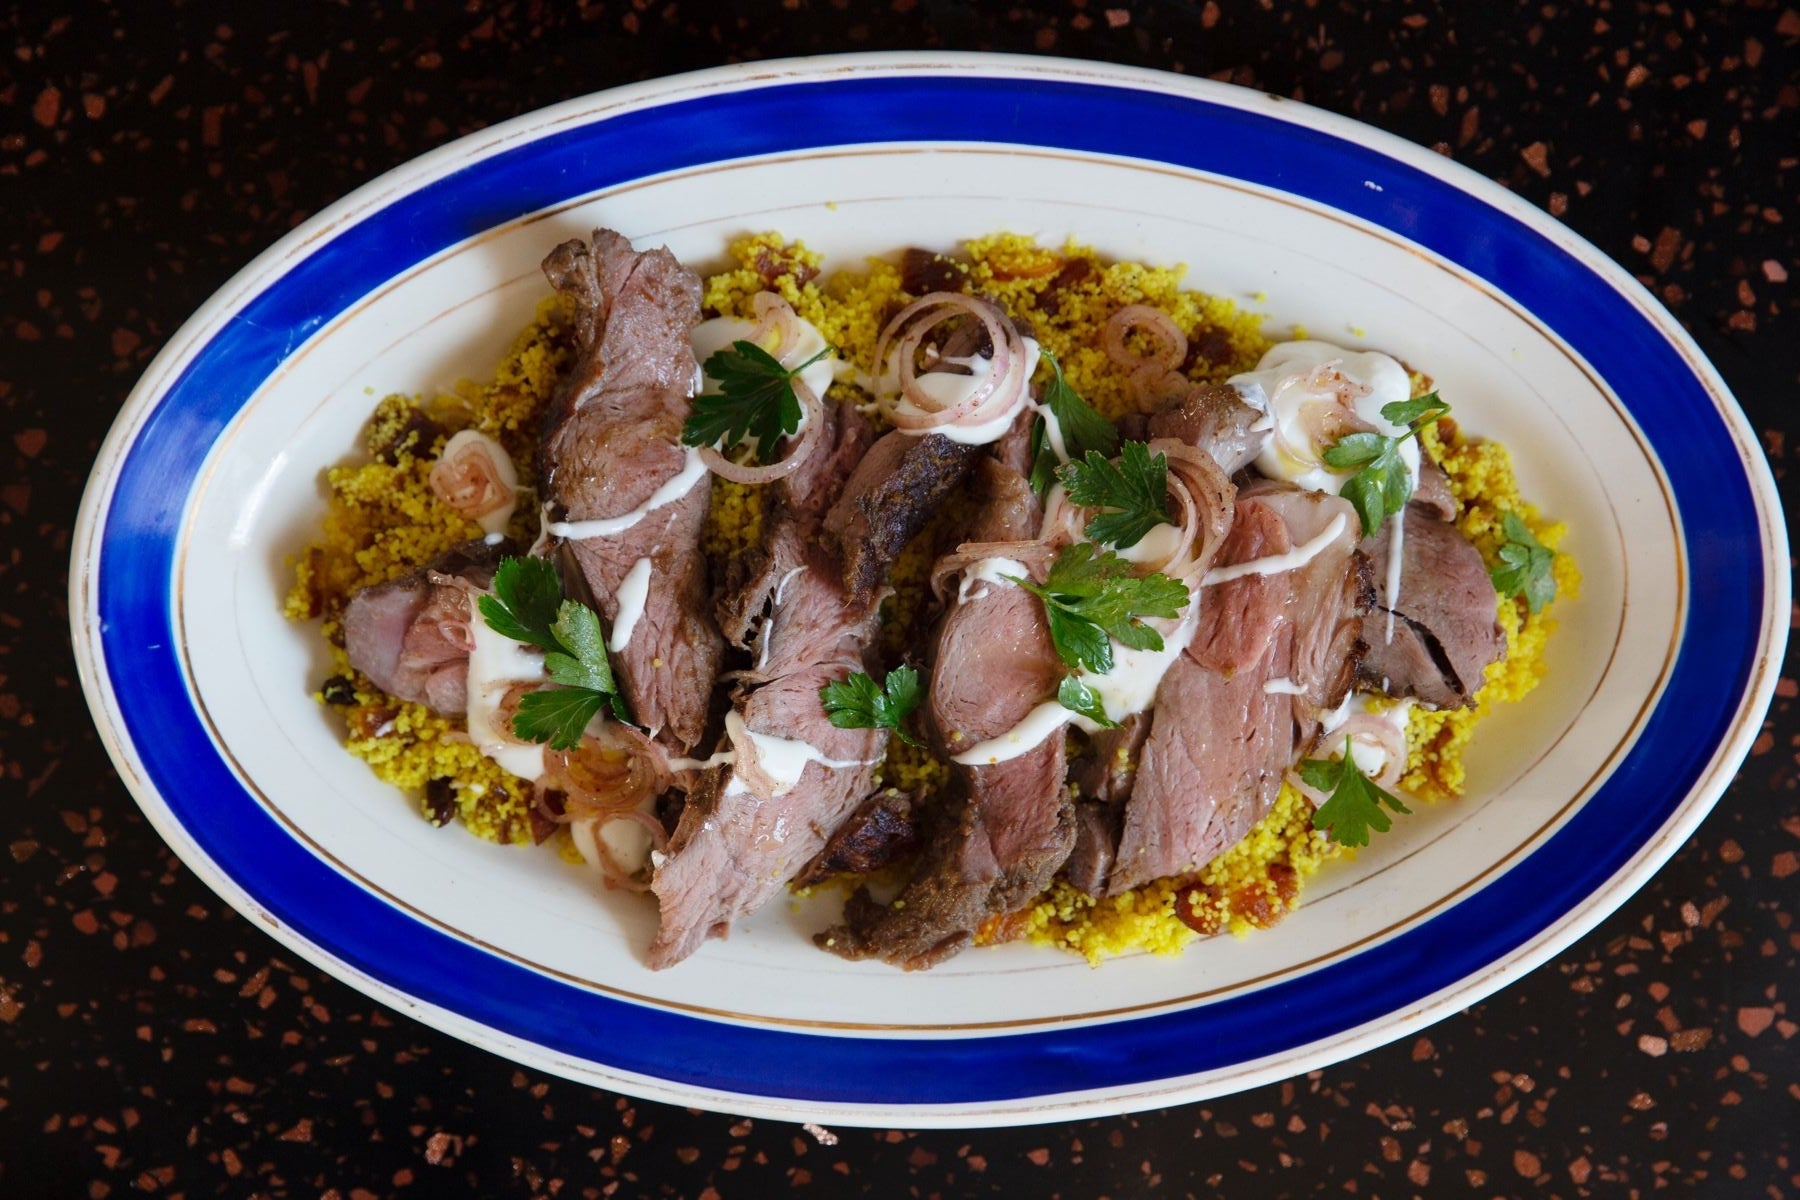 Sous Vide Leg of Lamb Recipe Cinder Grill Leg of Lamb Recipe Couscous Roast leg of lamb